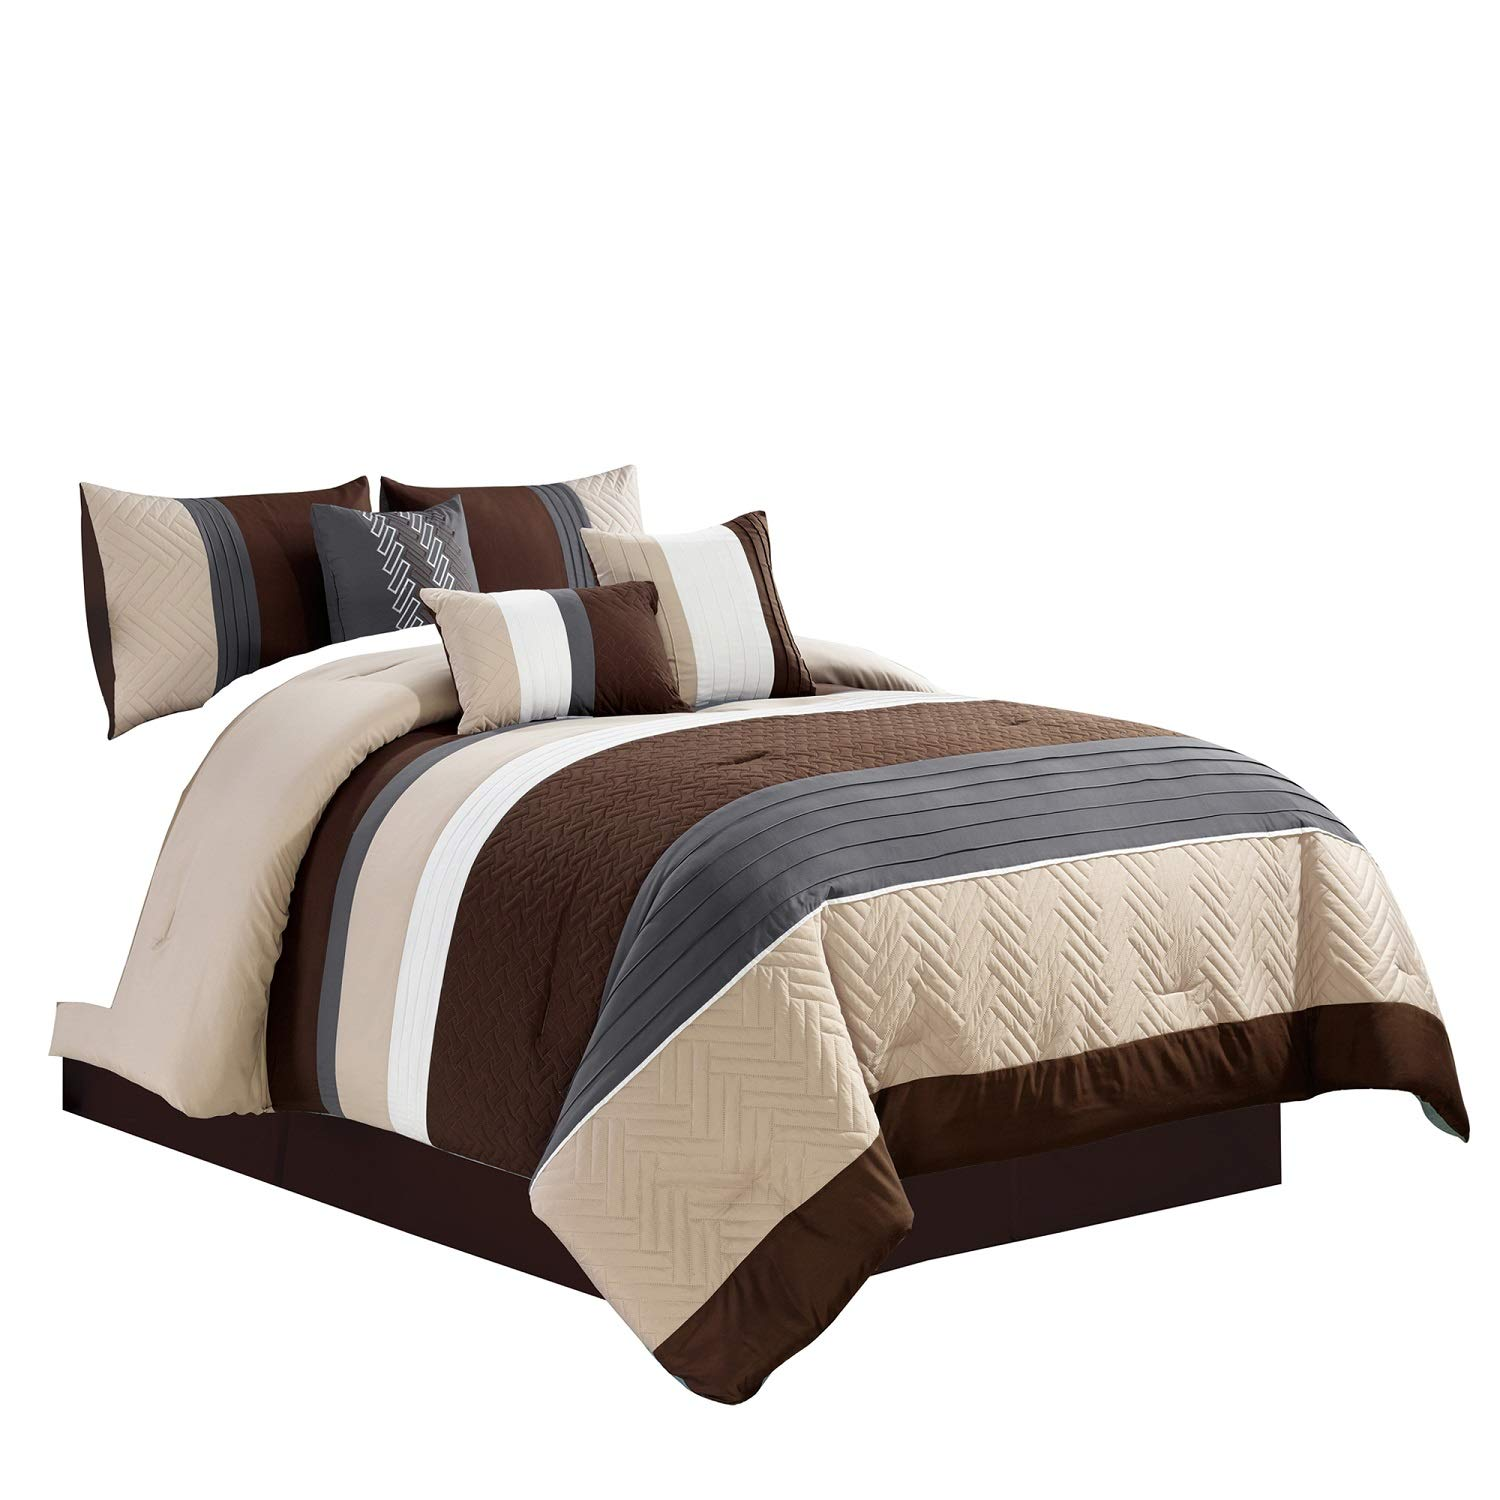 WPM 7 Piece Modern Design Comforter Set Multicolor Grey/Coffee Brown/Beige Taupe Embroidered Bed in a Bag Professional Bedding Set-Leni (Queen)